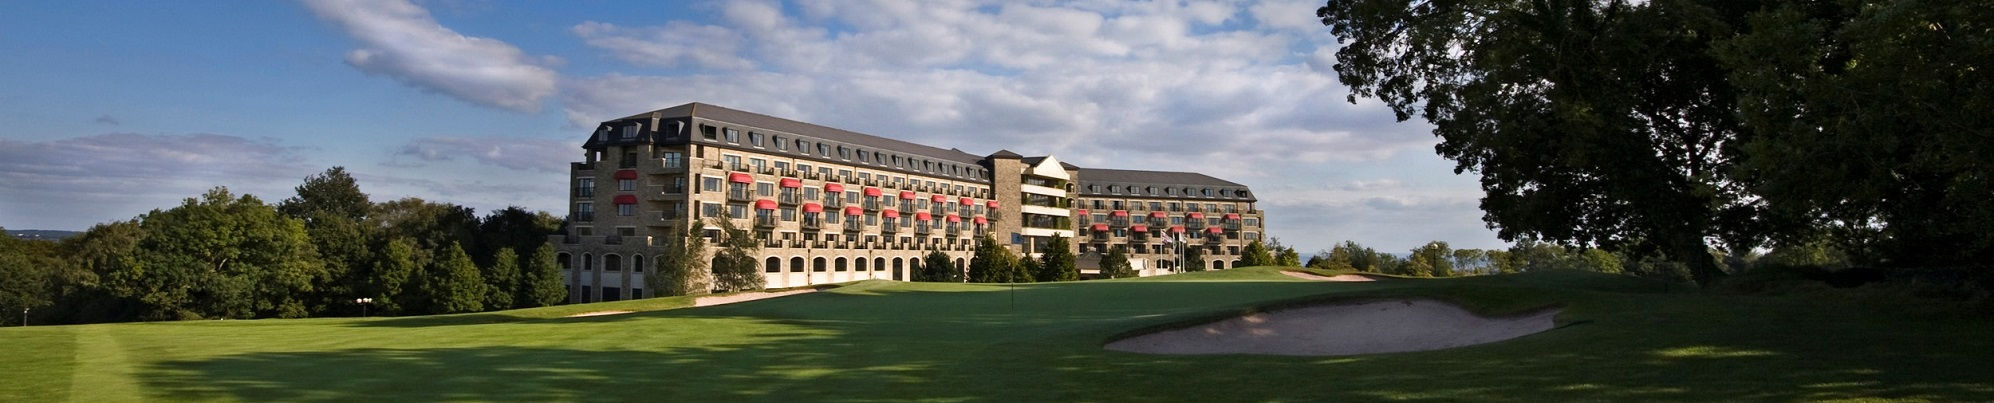 Celtic Manor Resort South Wales